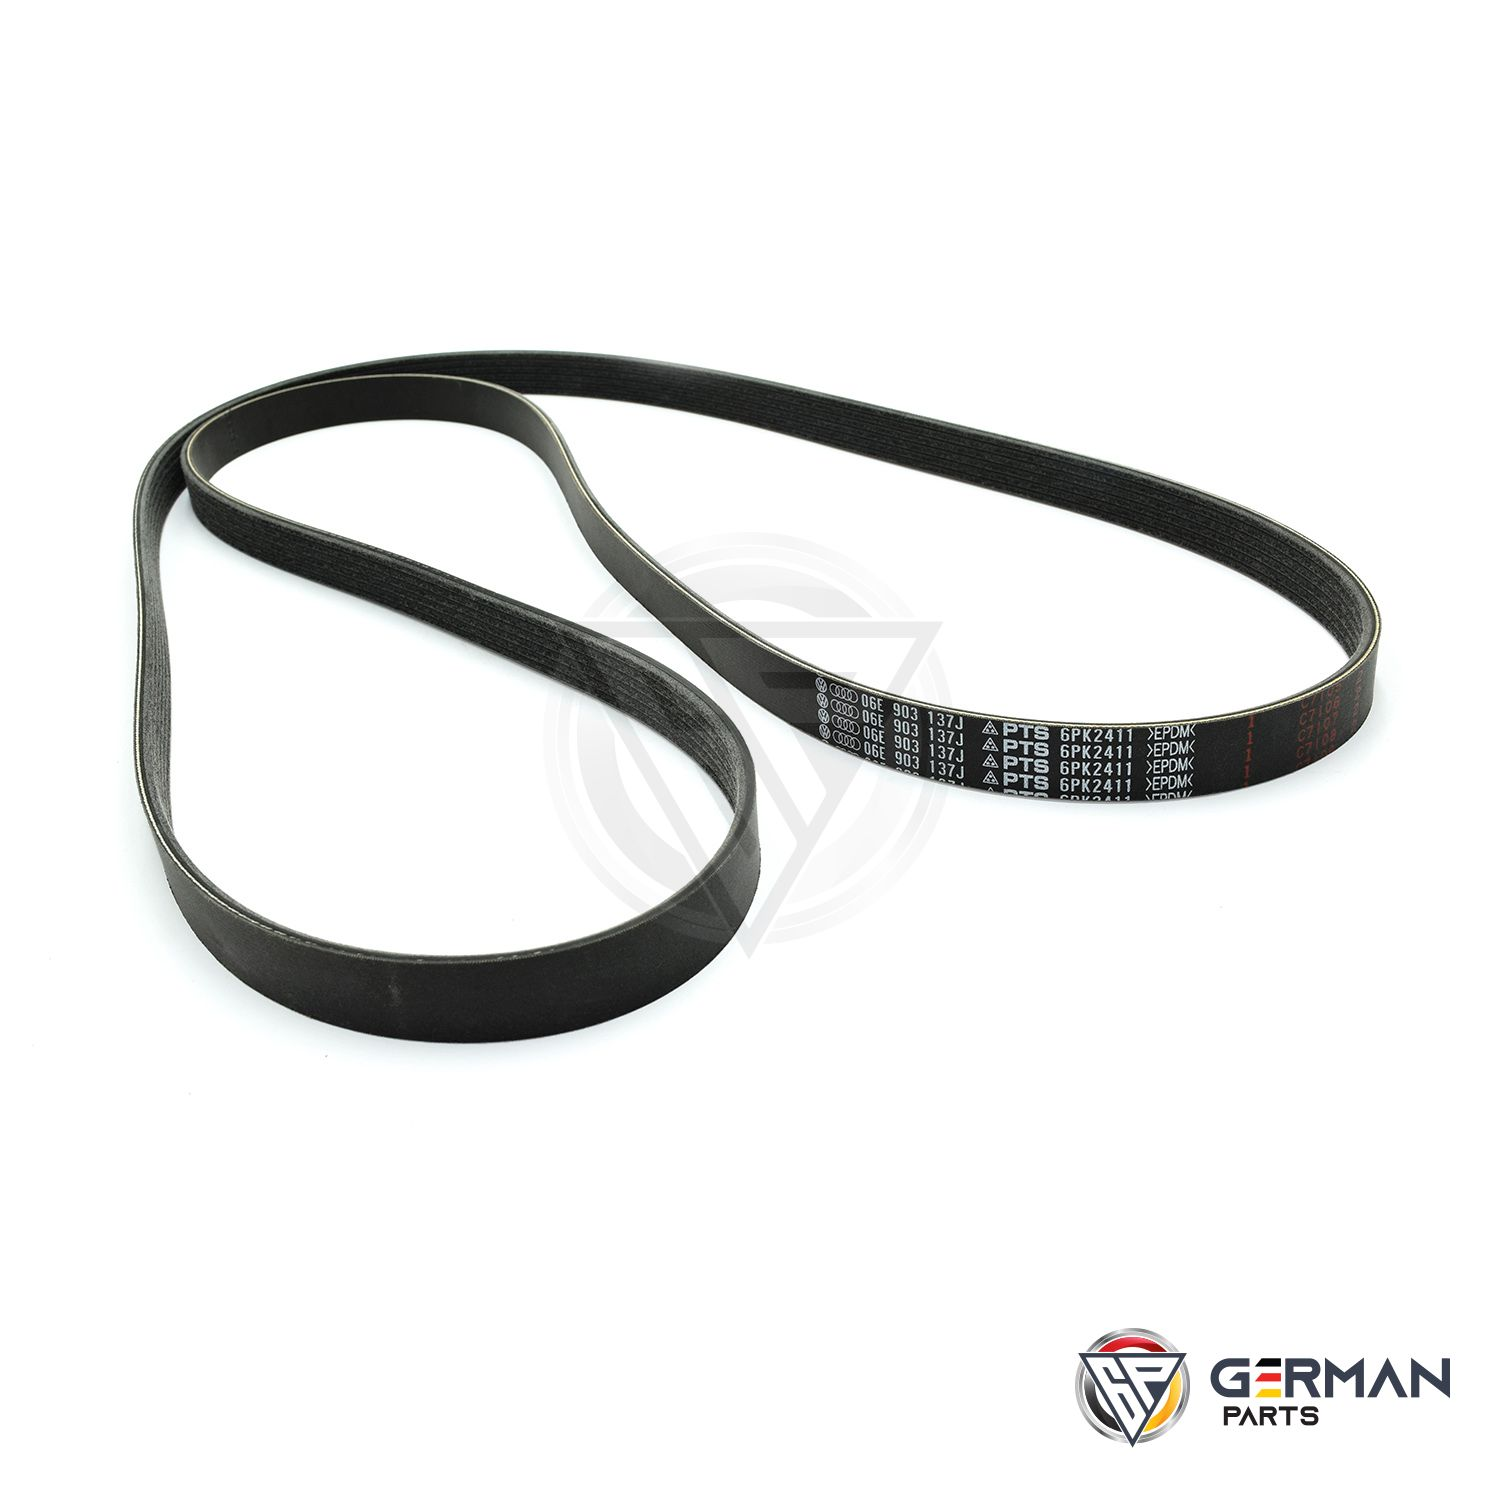 Buy Genuine Audi/Volkswagen V Belt 06E903137J - German Parts